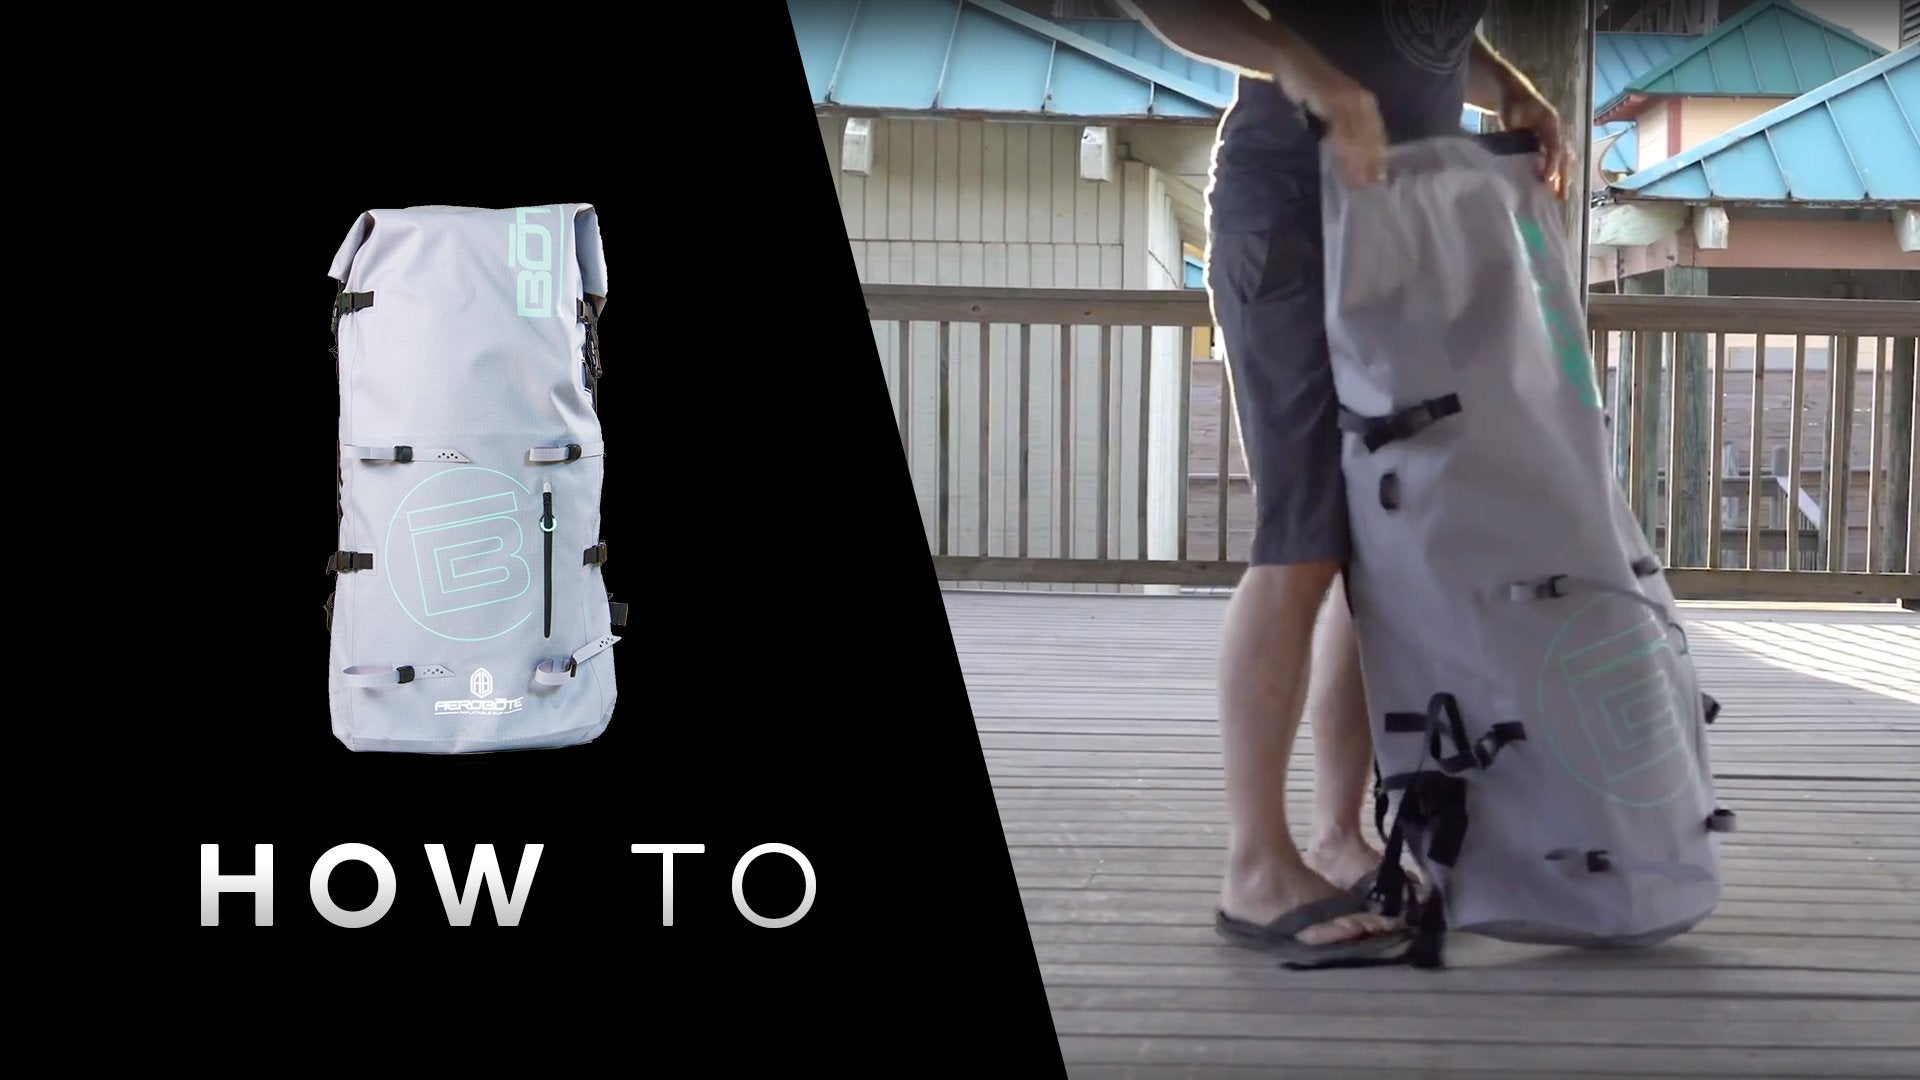 How to Pack Up Your AeroBOTE Inflatable Paddle Board